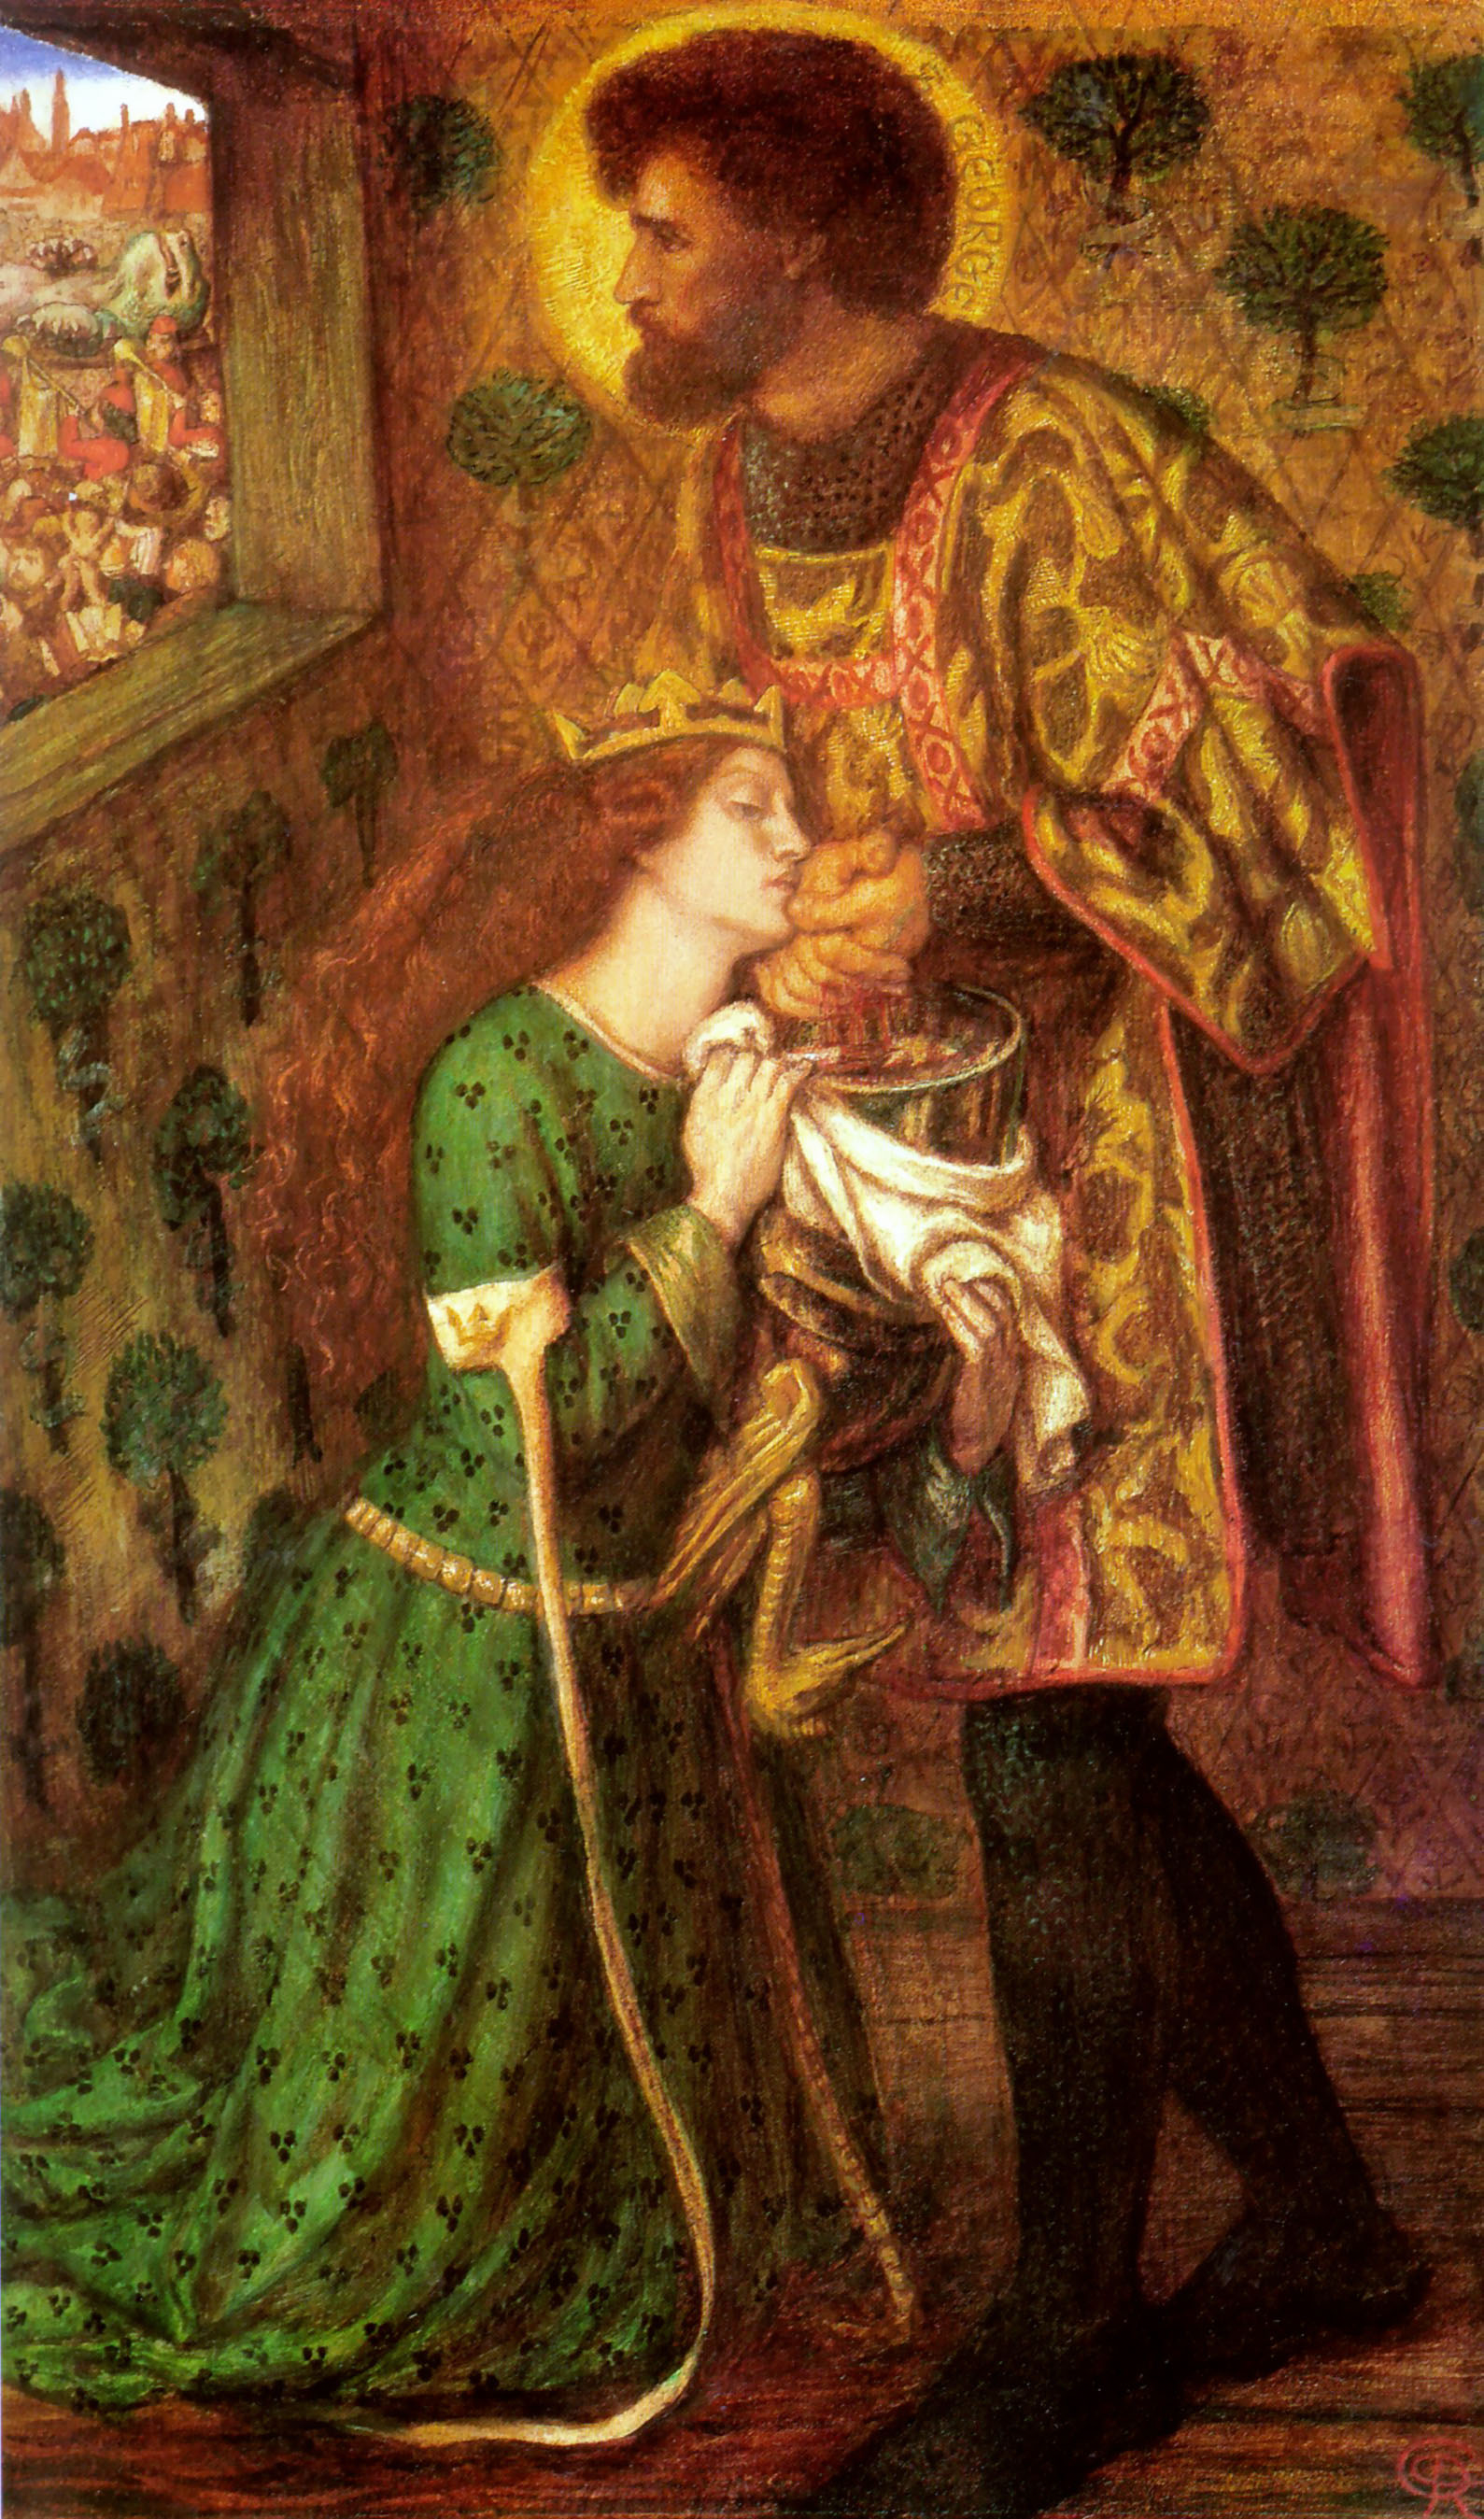 Saint George and the Princess Sabra, 1862